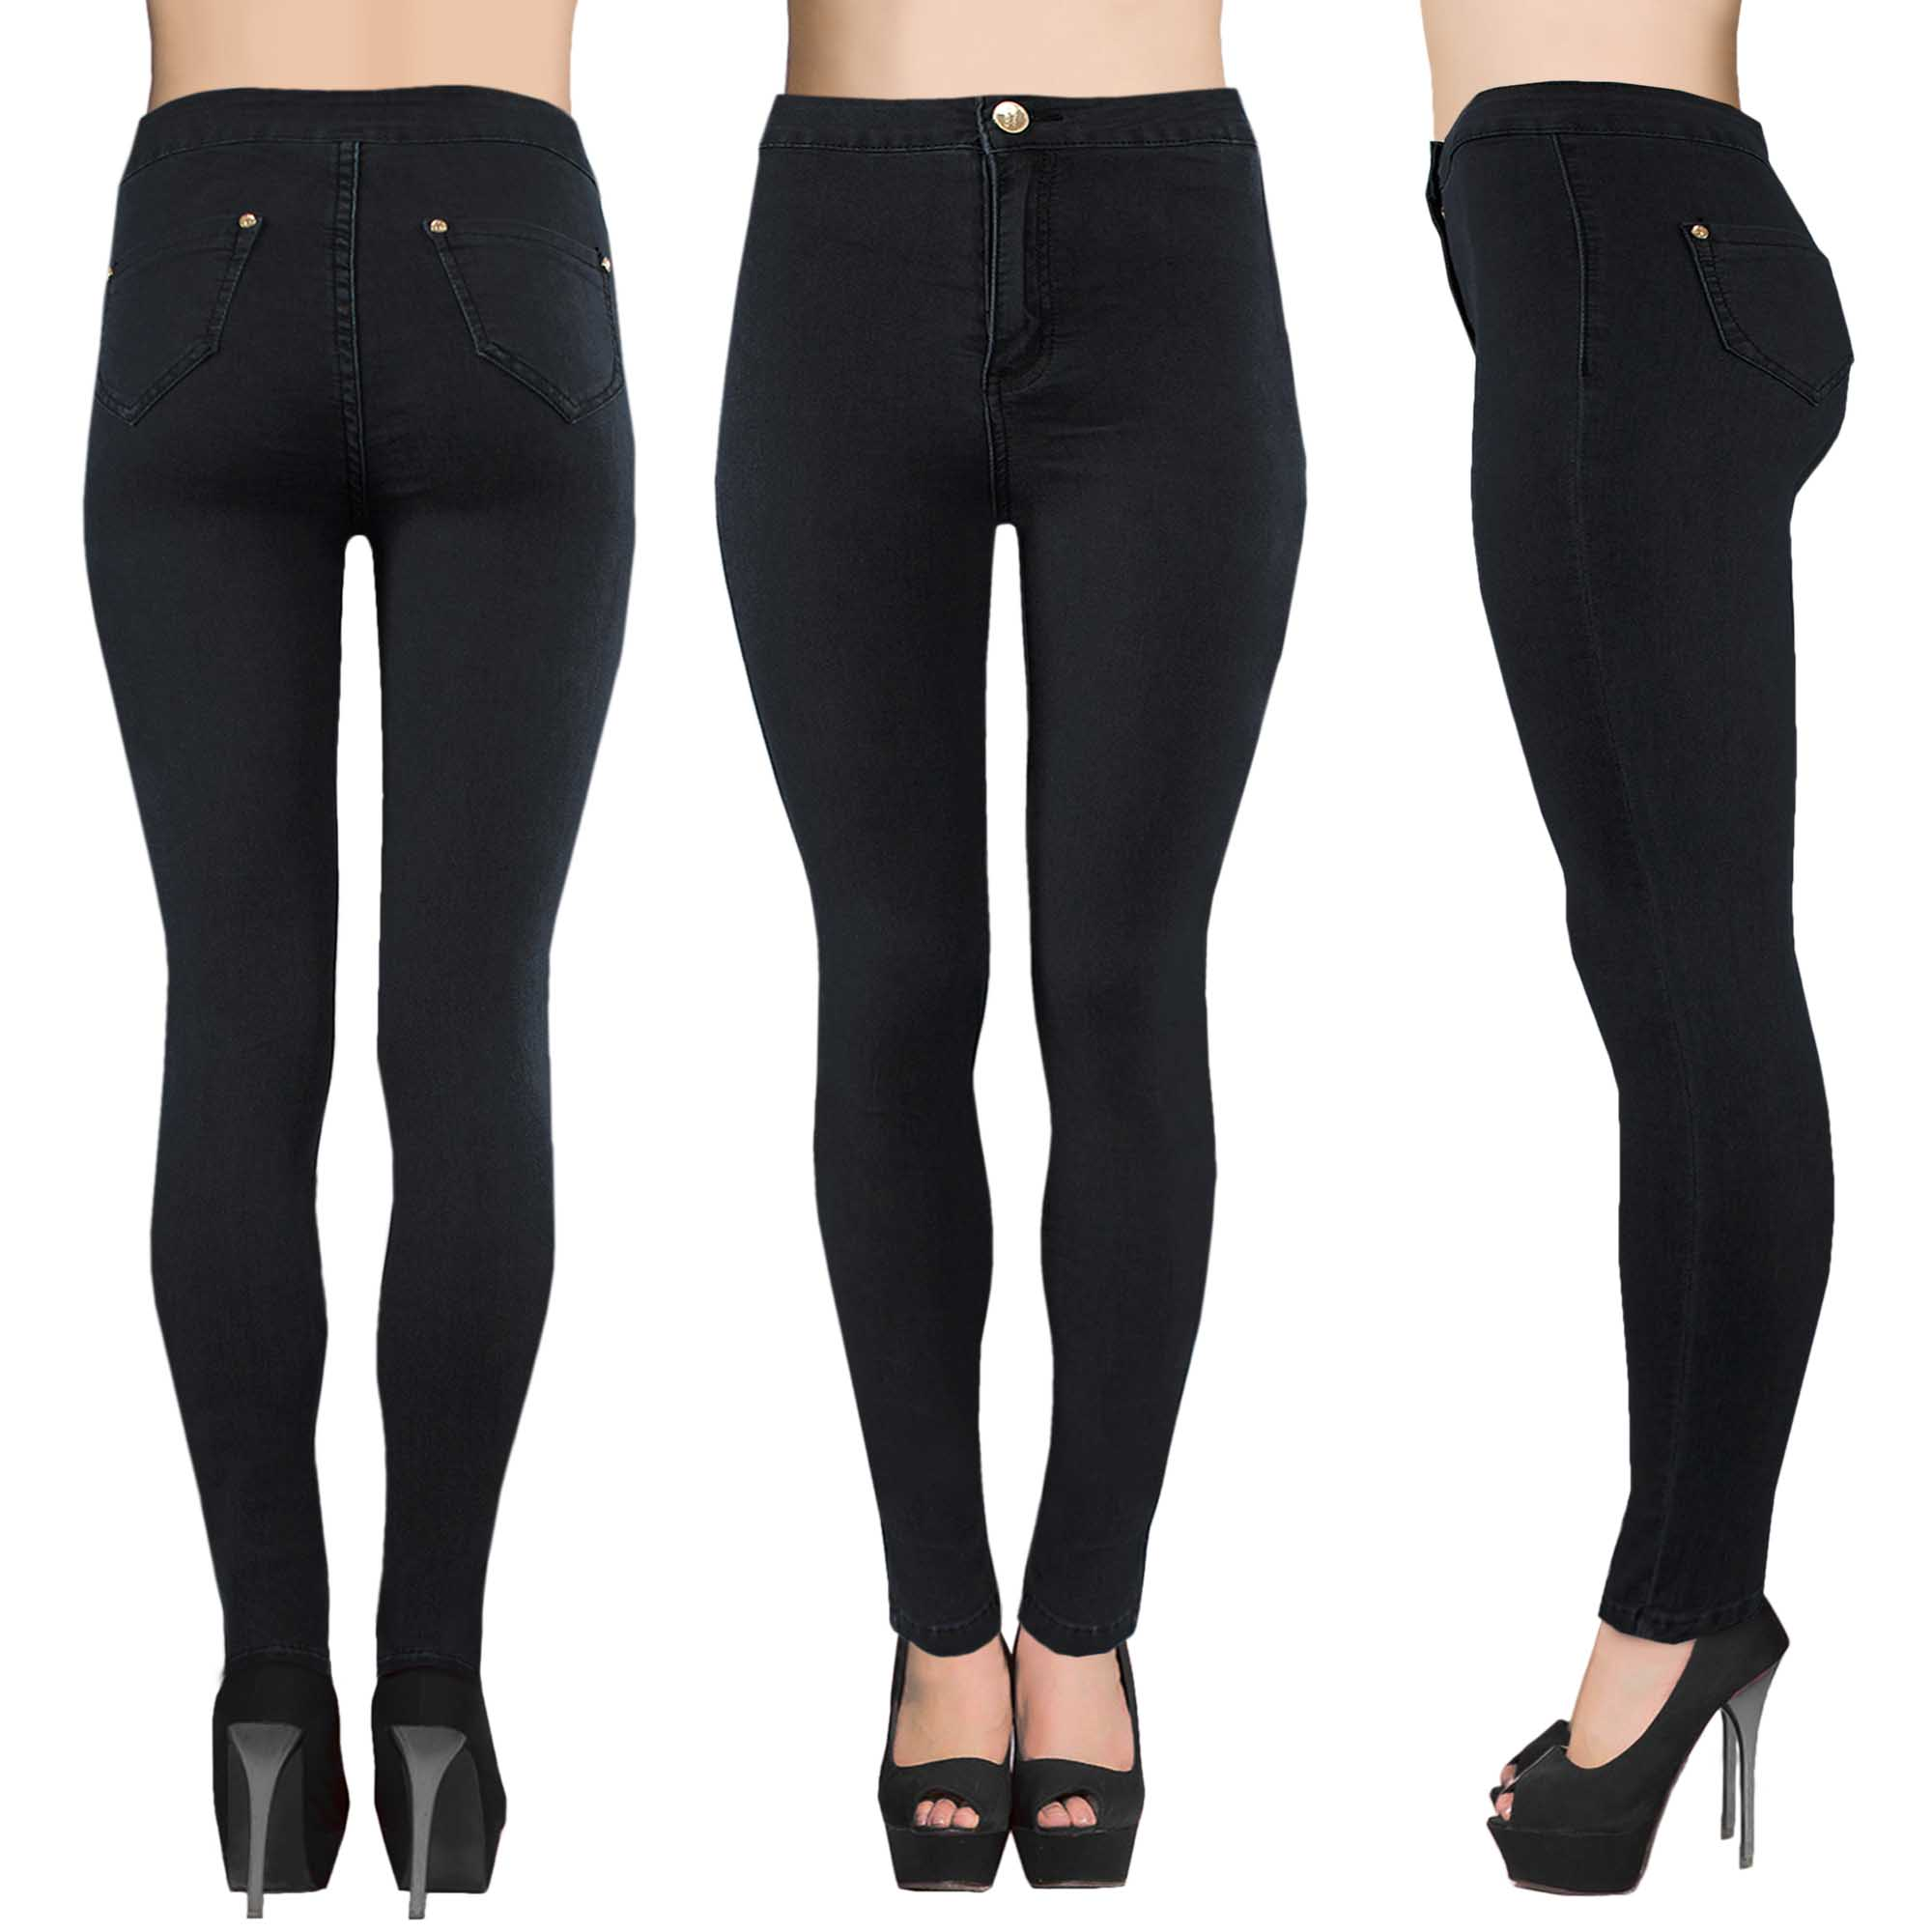 LADIES HIGH WAISTED BLACK TUBE JEANS WOMENS STRETCH DENIM SKINNY ...